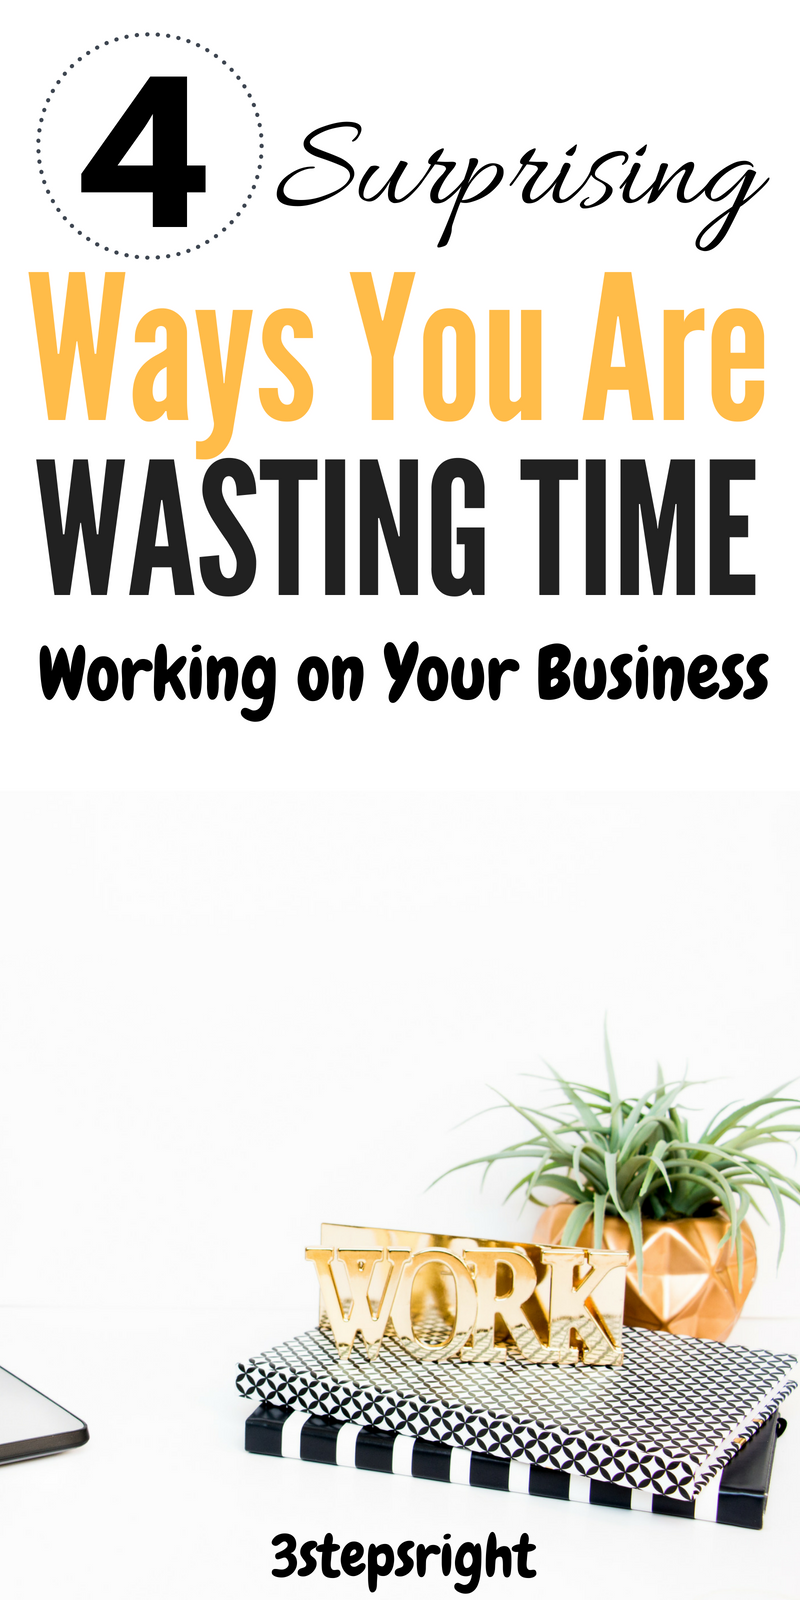 14. 4 ways you are wasting time on your business.png